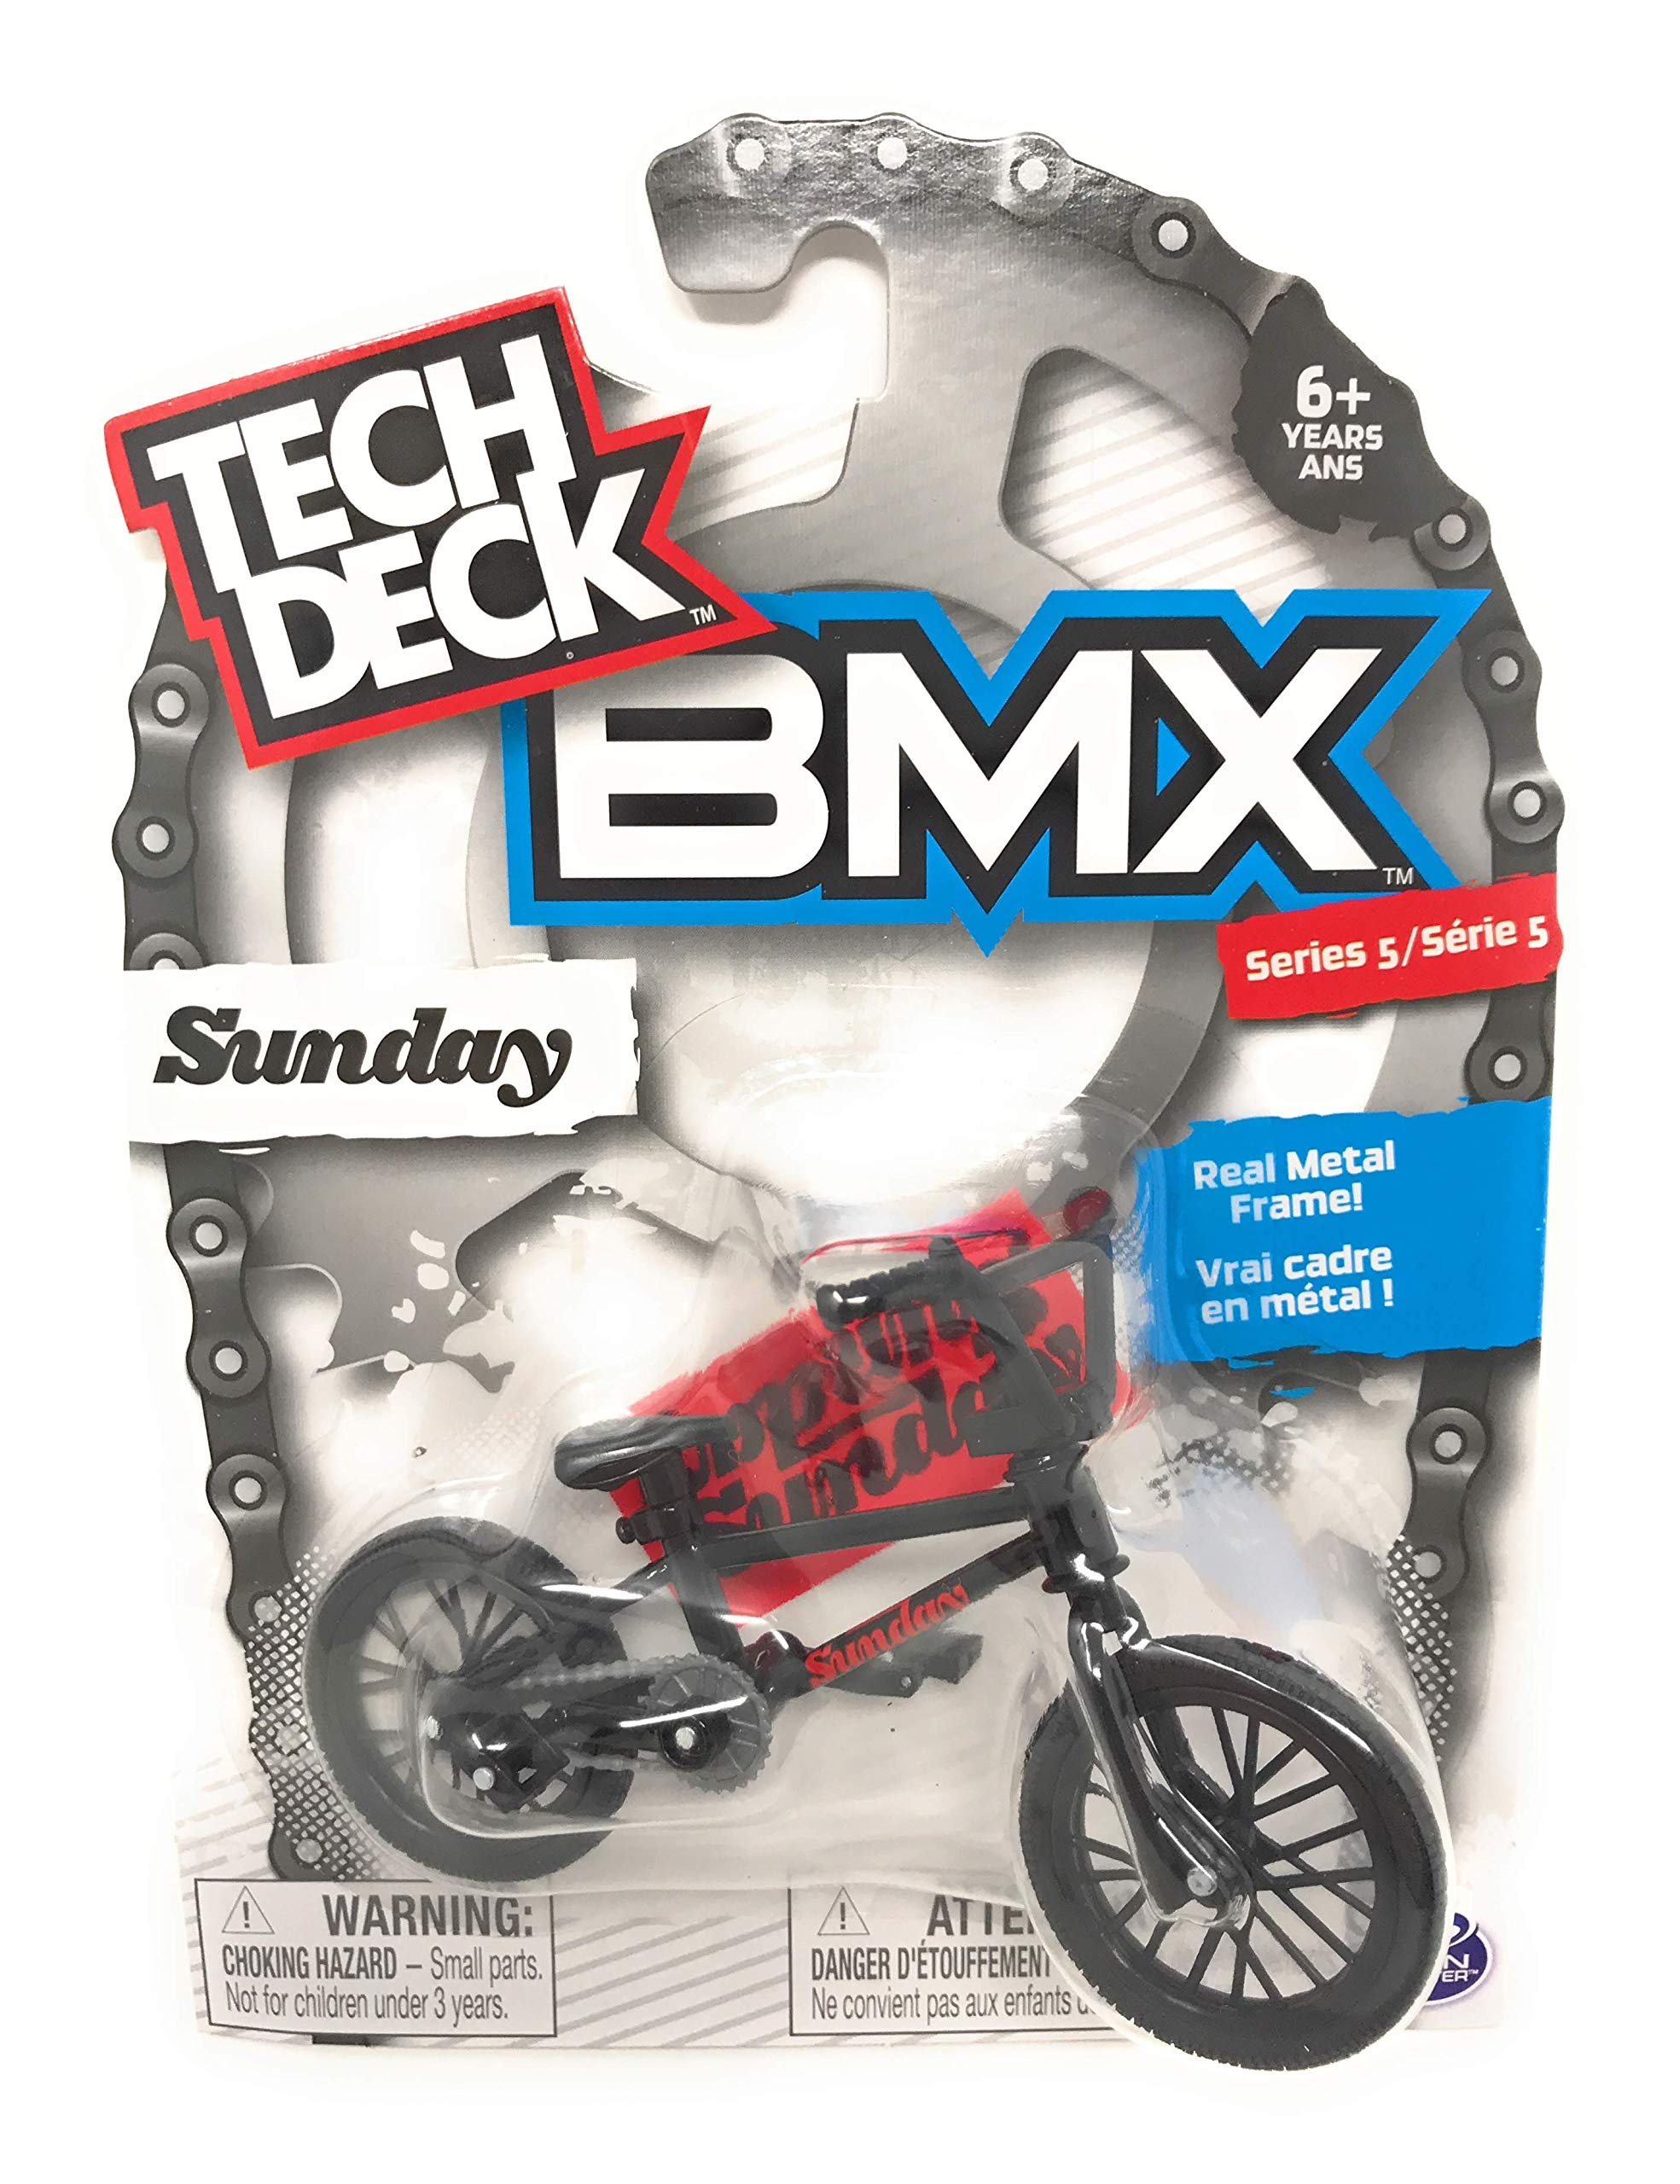 Nozlen Toys Bundle: Tech Deck Series 5 BMX Bikes Set of 4 - WeThePeople and Sunday with Bonus Bag by Nozlen Toys (Image #4)